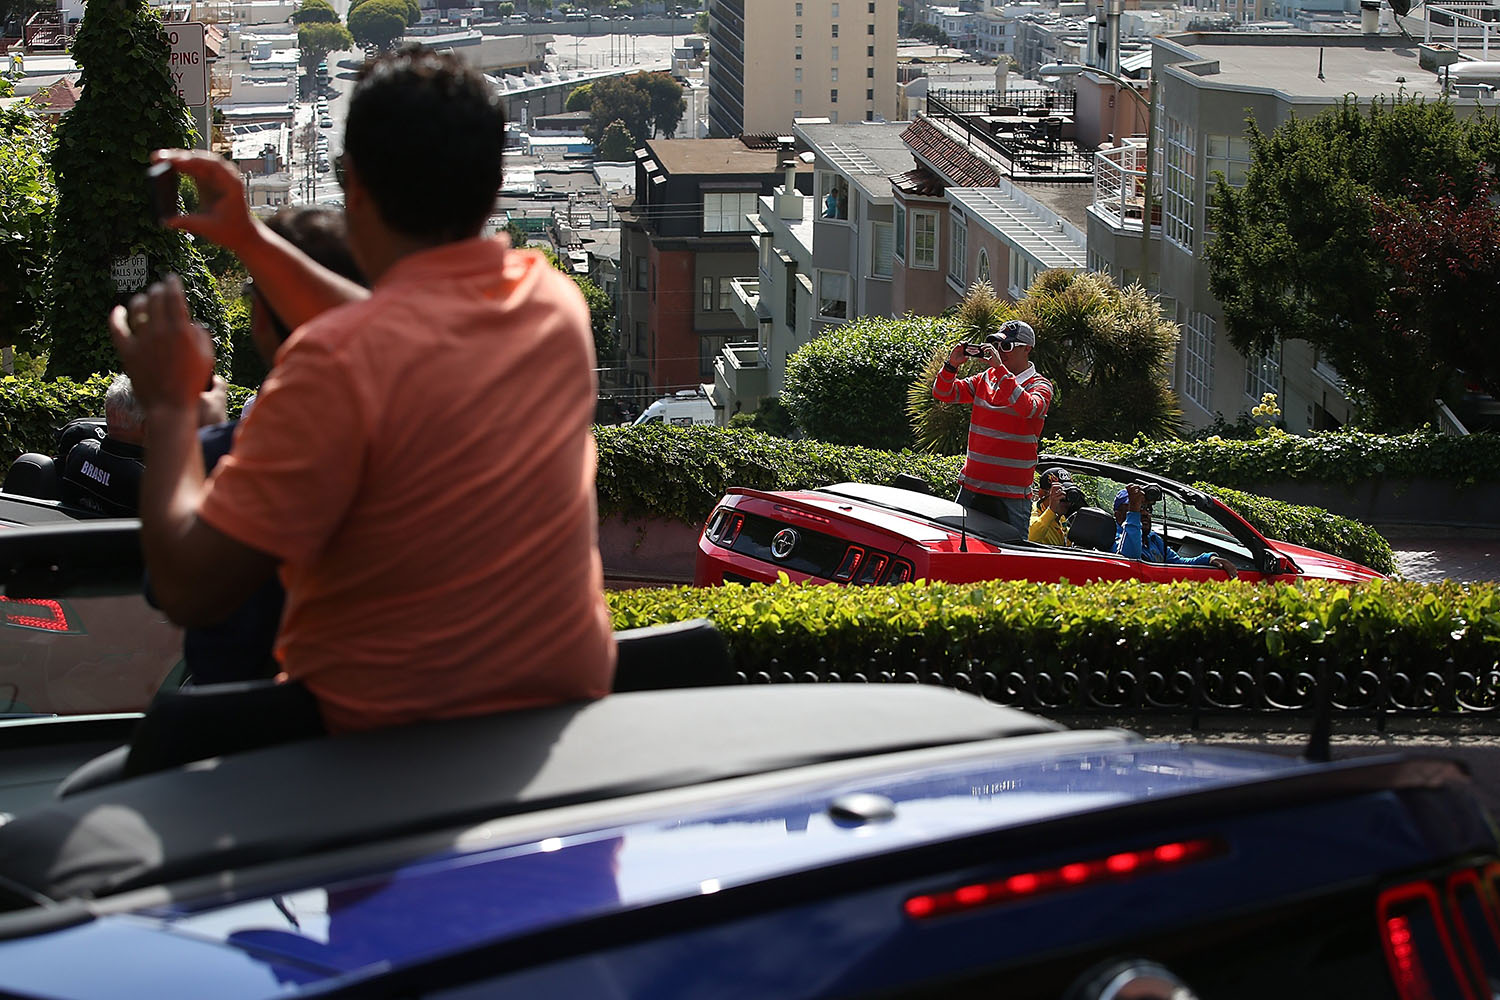 Tourists take pictures while driving down Lombard Street in San Francisco, on May 20, 2014.